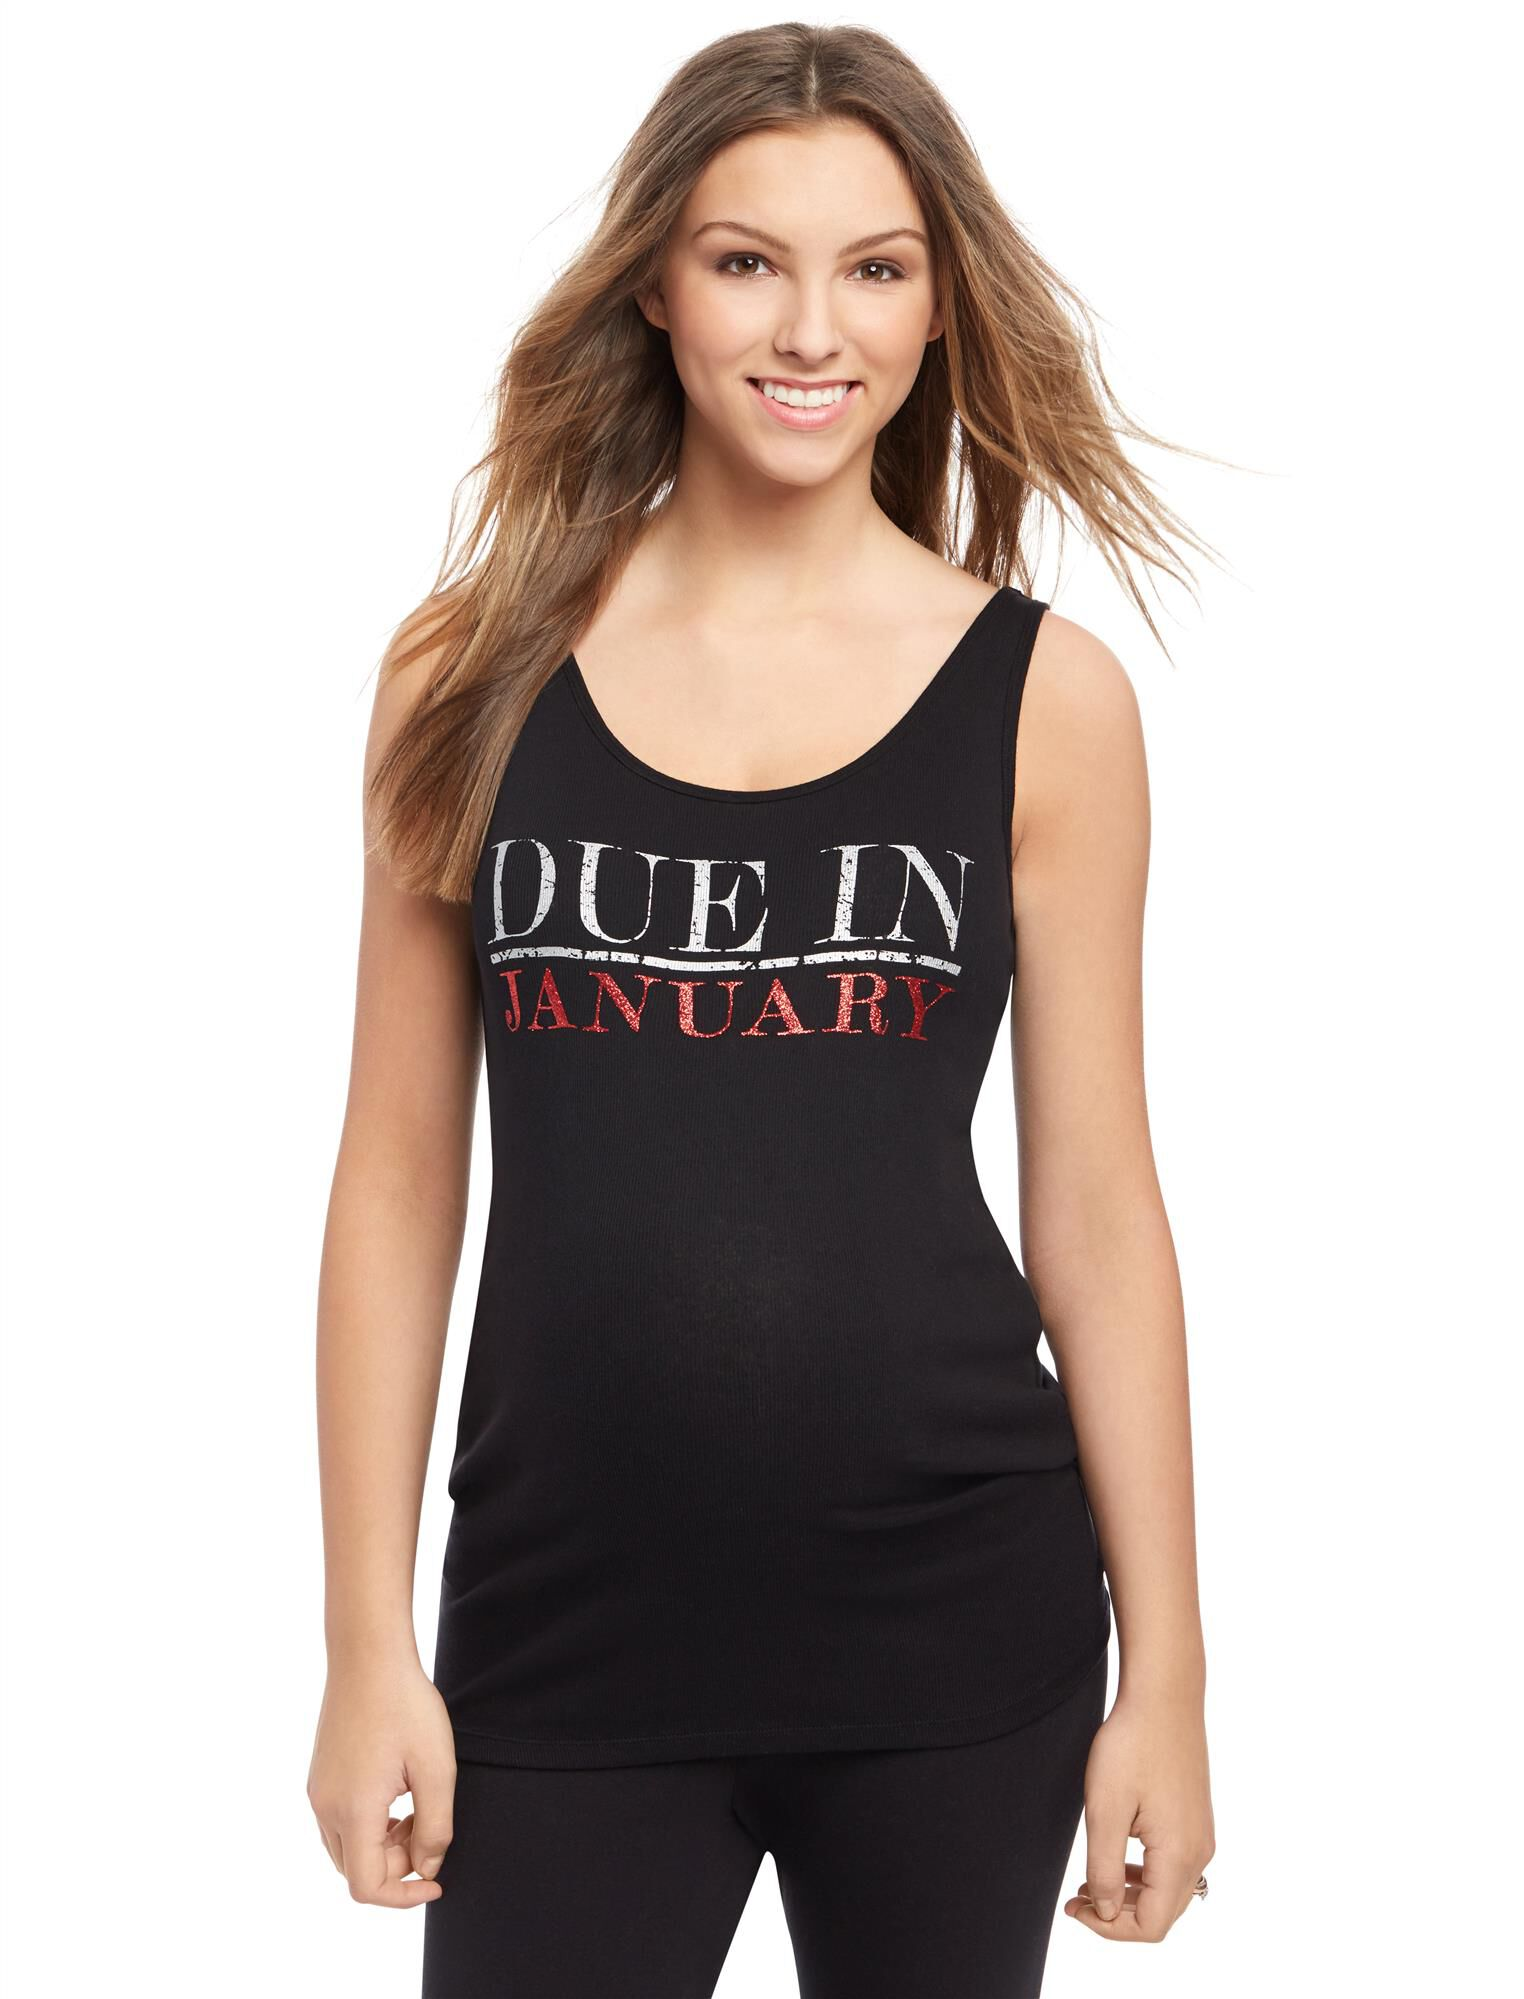 Due in January Maternity Graphic Tank Top